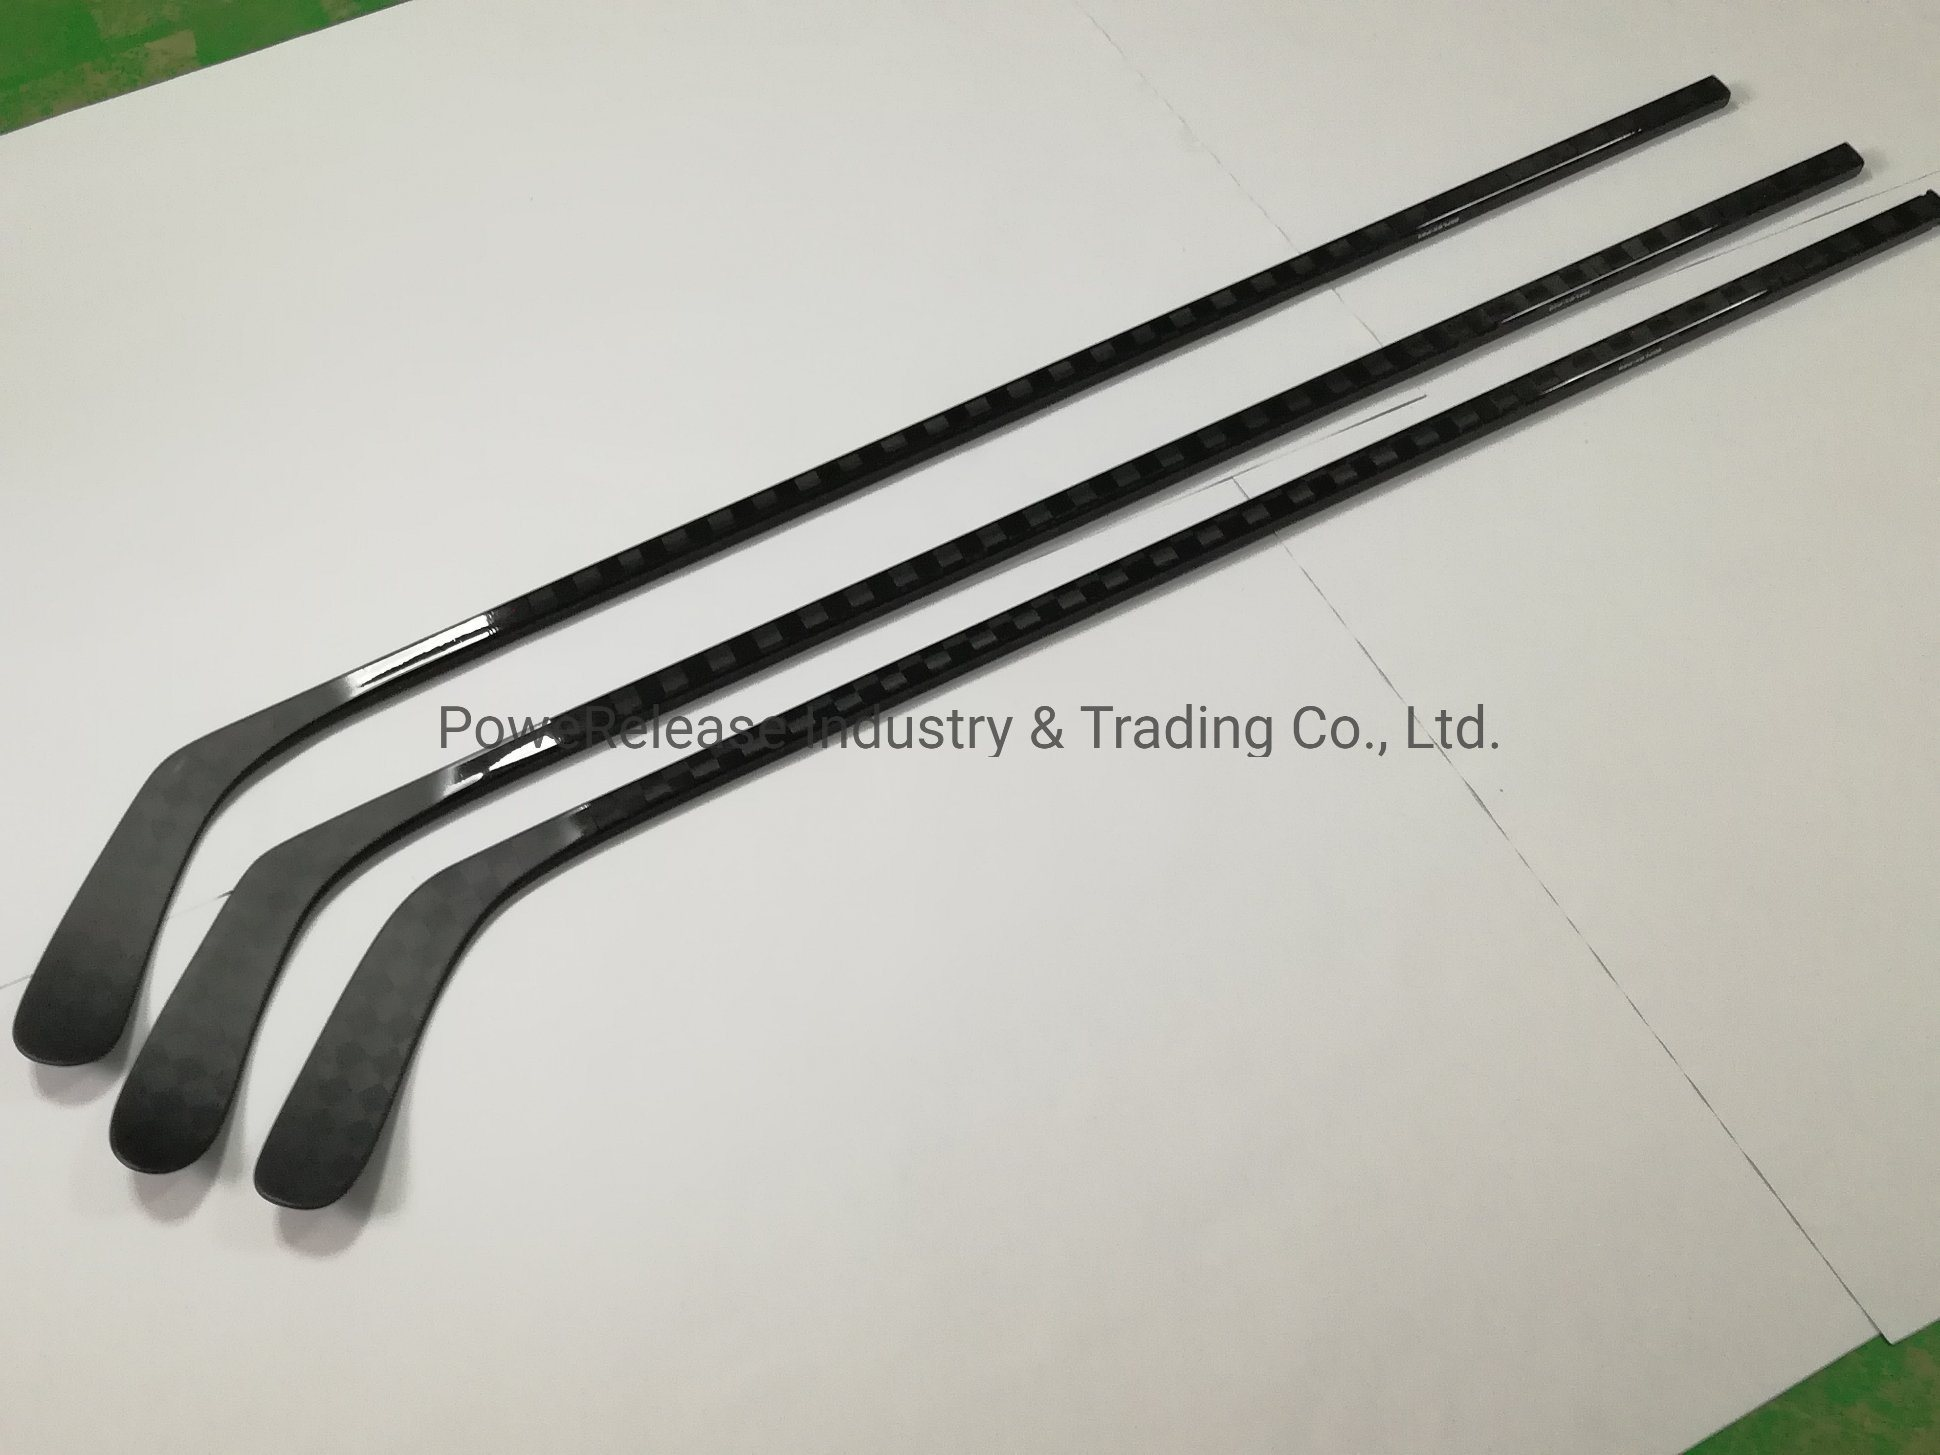 China Bauer Hockey Stick, Bauer Hockey Stick Wholesale, Manufacturers,  Price | Made-in-China com